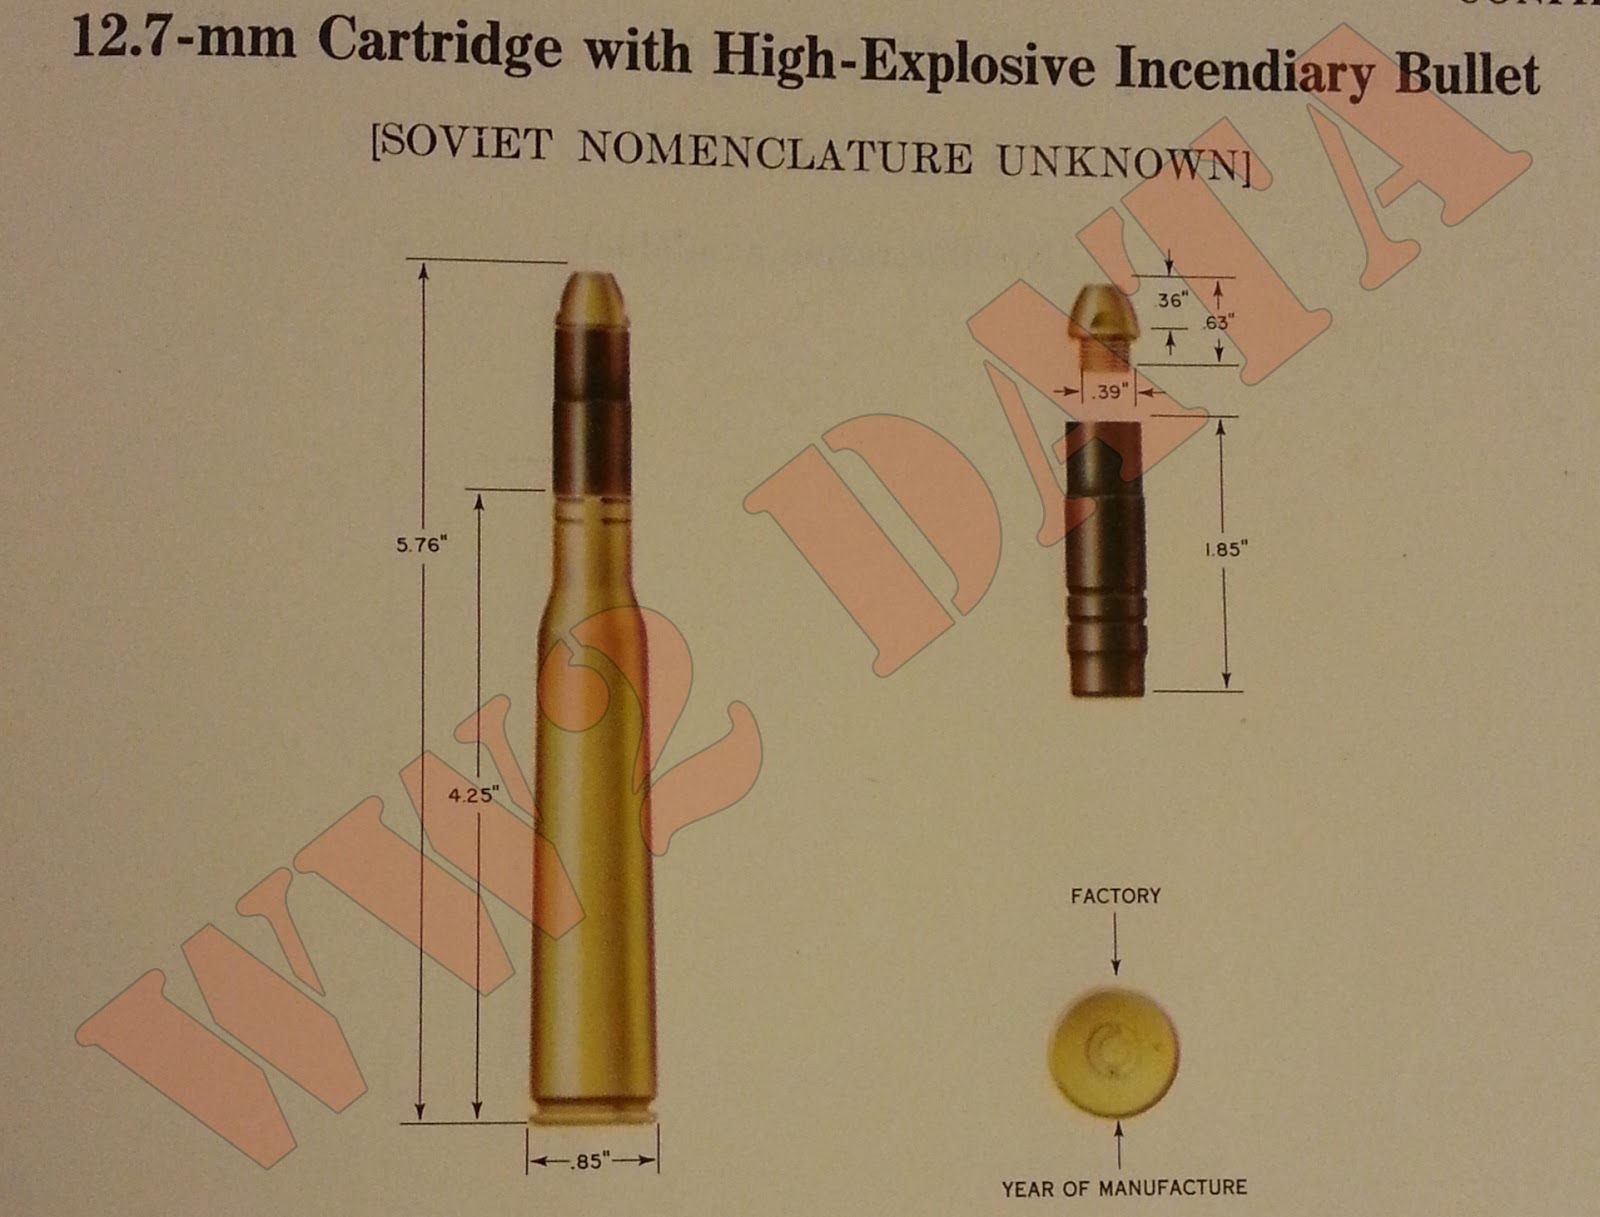 hight resolution of this cartridge is used in soviet 12 7mm beresin bs aircraft machine guns and can be used in the 12 7mm dshk m1938 aa machine gun the bullet consists of a